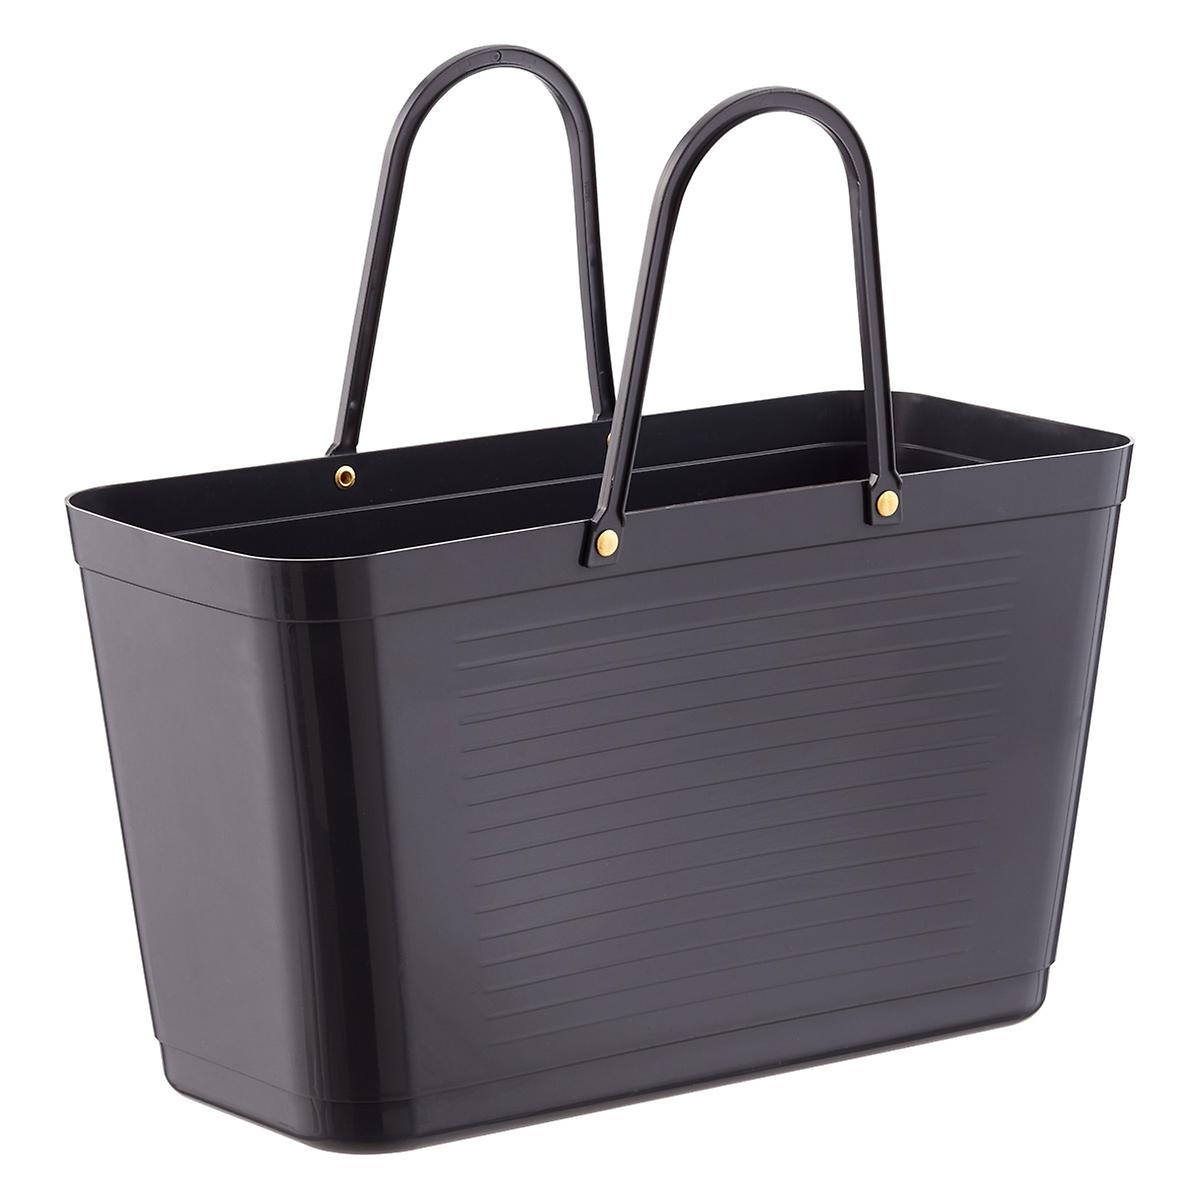 Shipping Container Bag Shop: The Container Store